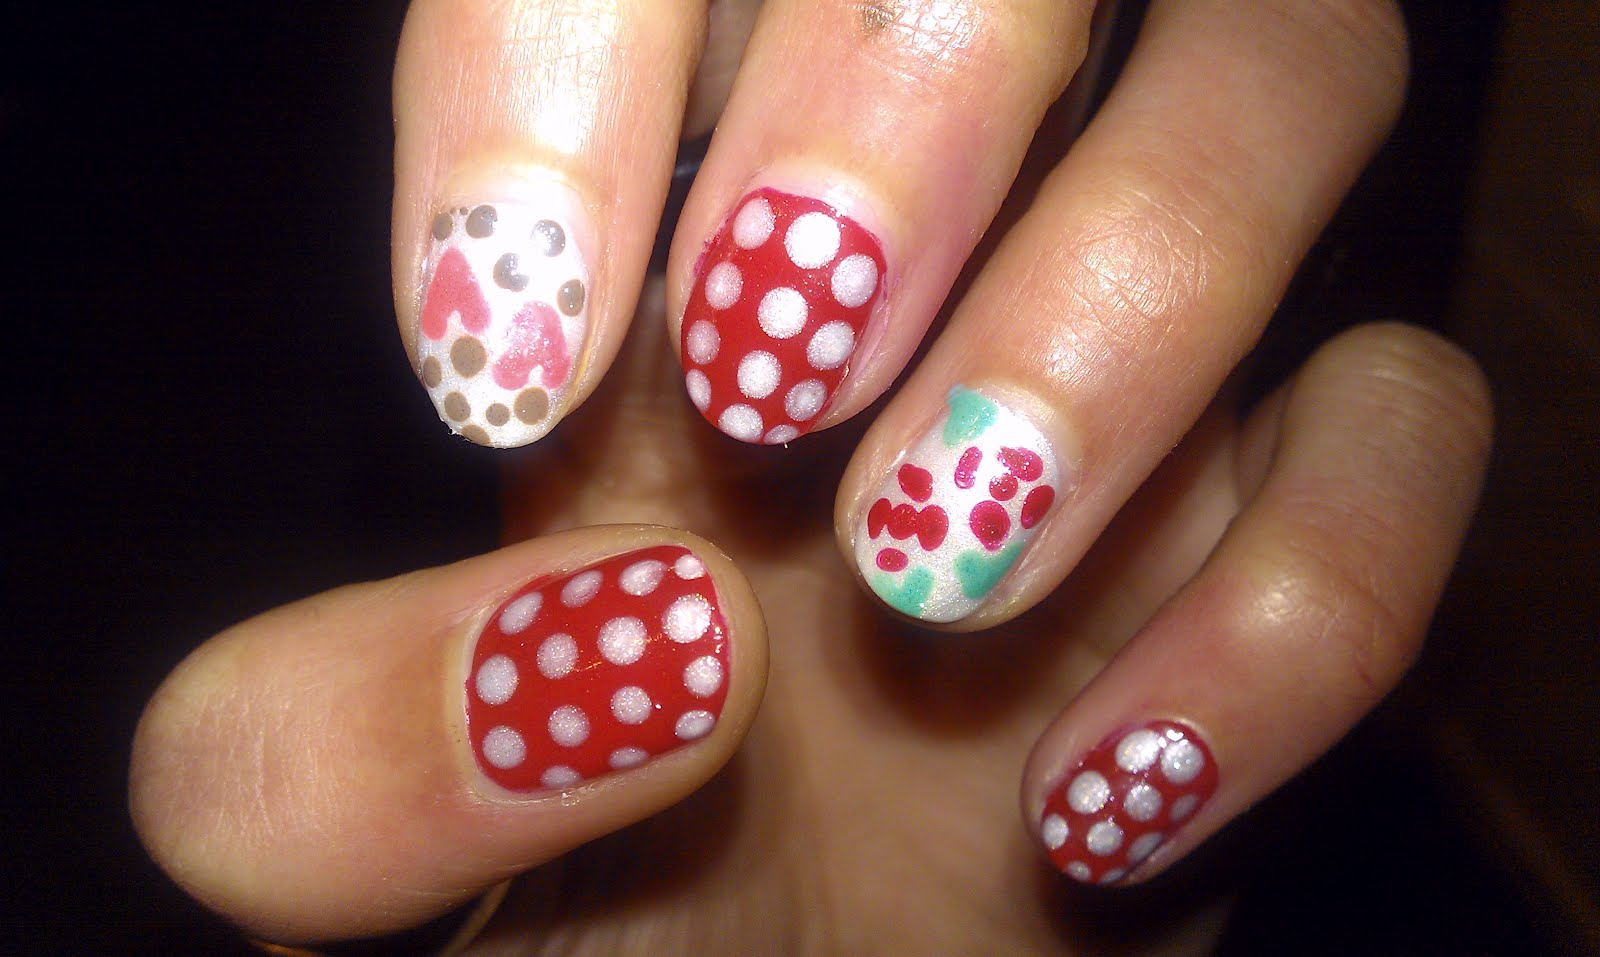 valentine%27s+day+nail+designs+(3) Nail Art Designs Step By At Home on makeup at home, tattoo at home, nail art wolves, nail polish art at home, hair at home, nail gel at home, jewelry at home, flower at home, nail polish designs easy to do at home, nail design ideas, manicure at home, halloween at home, nail polish remover at home,